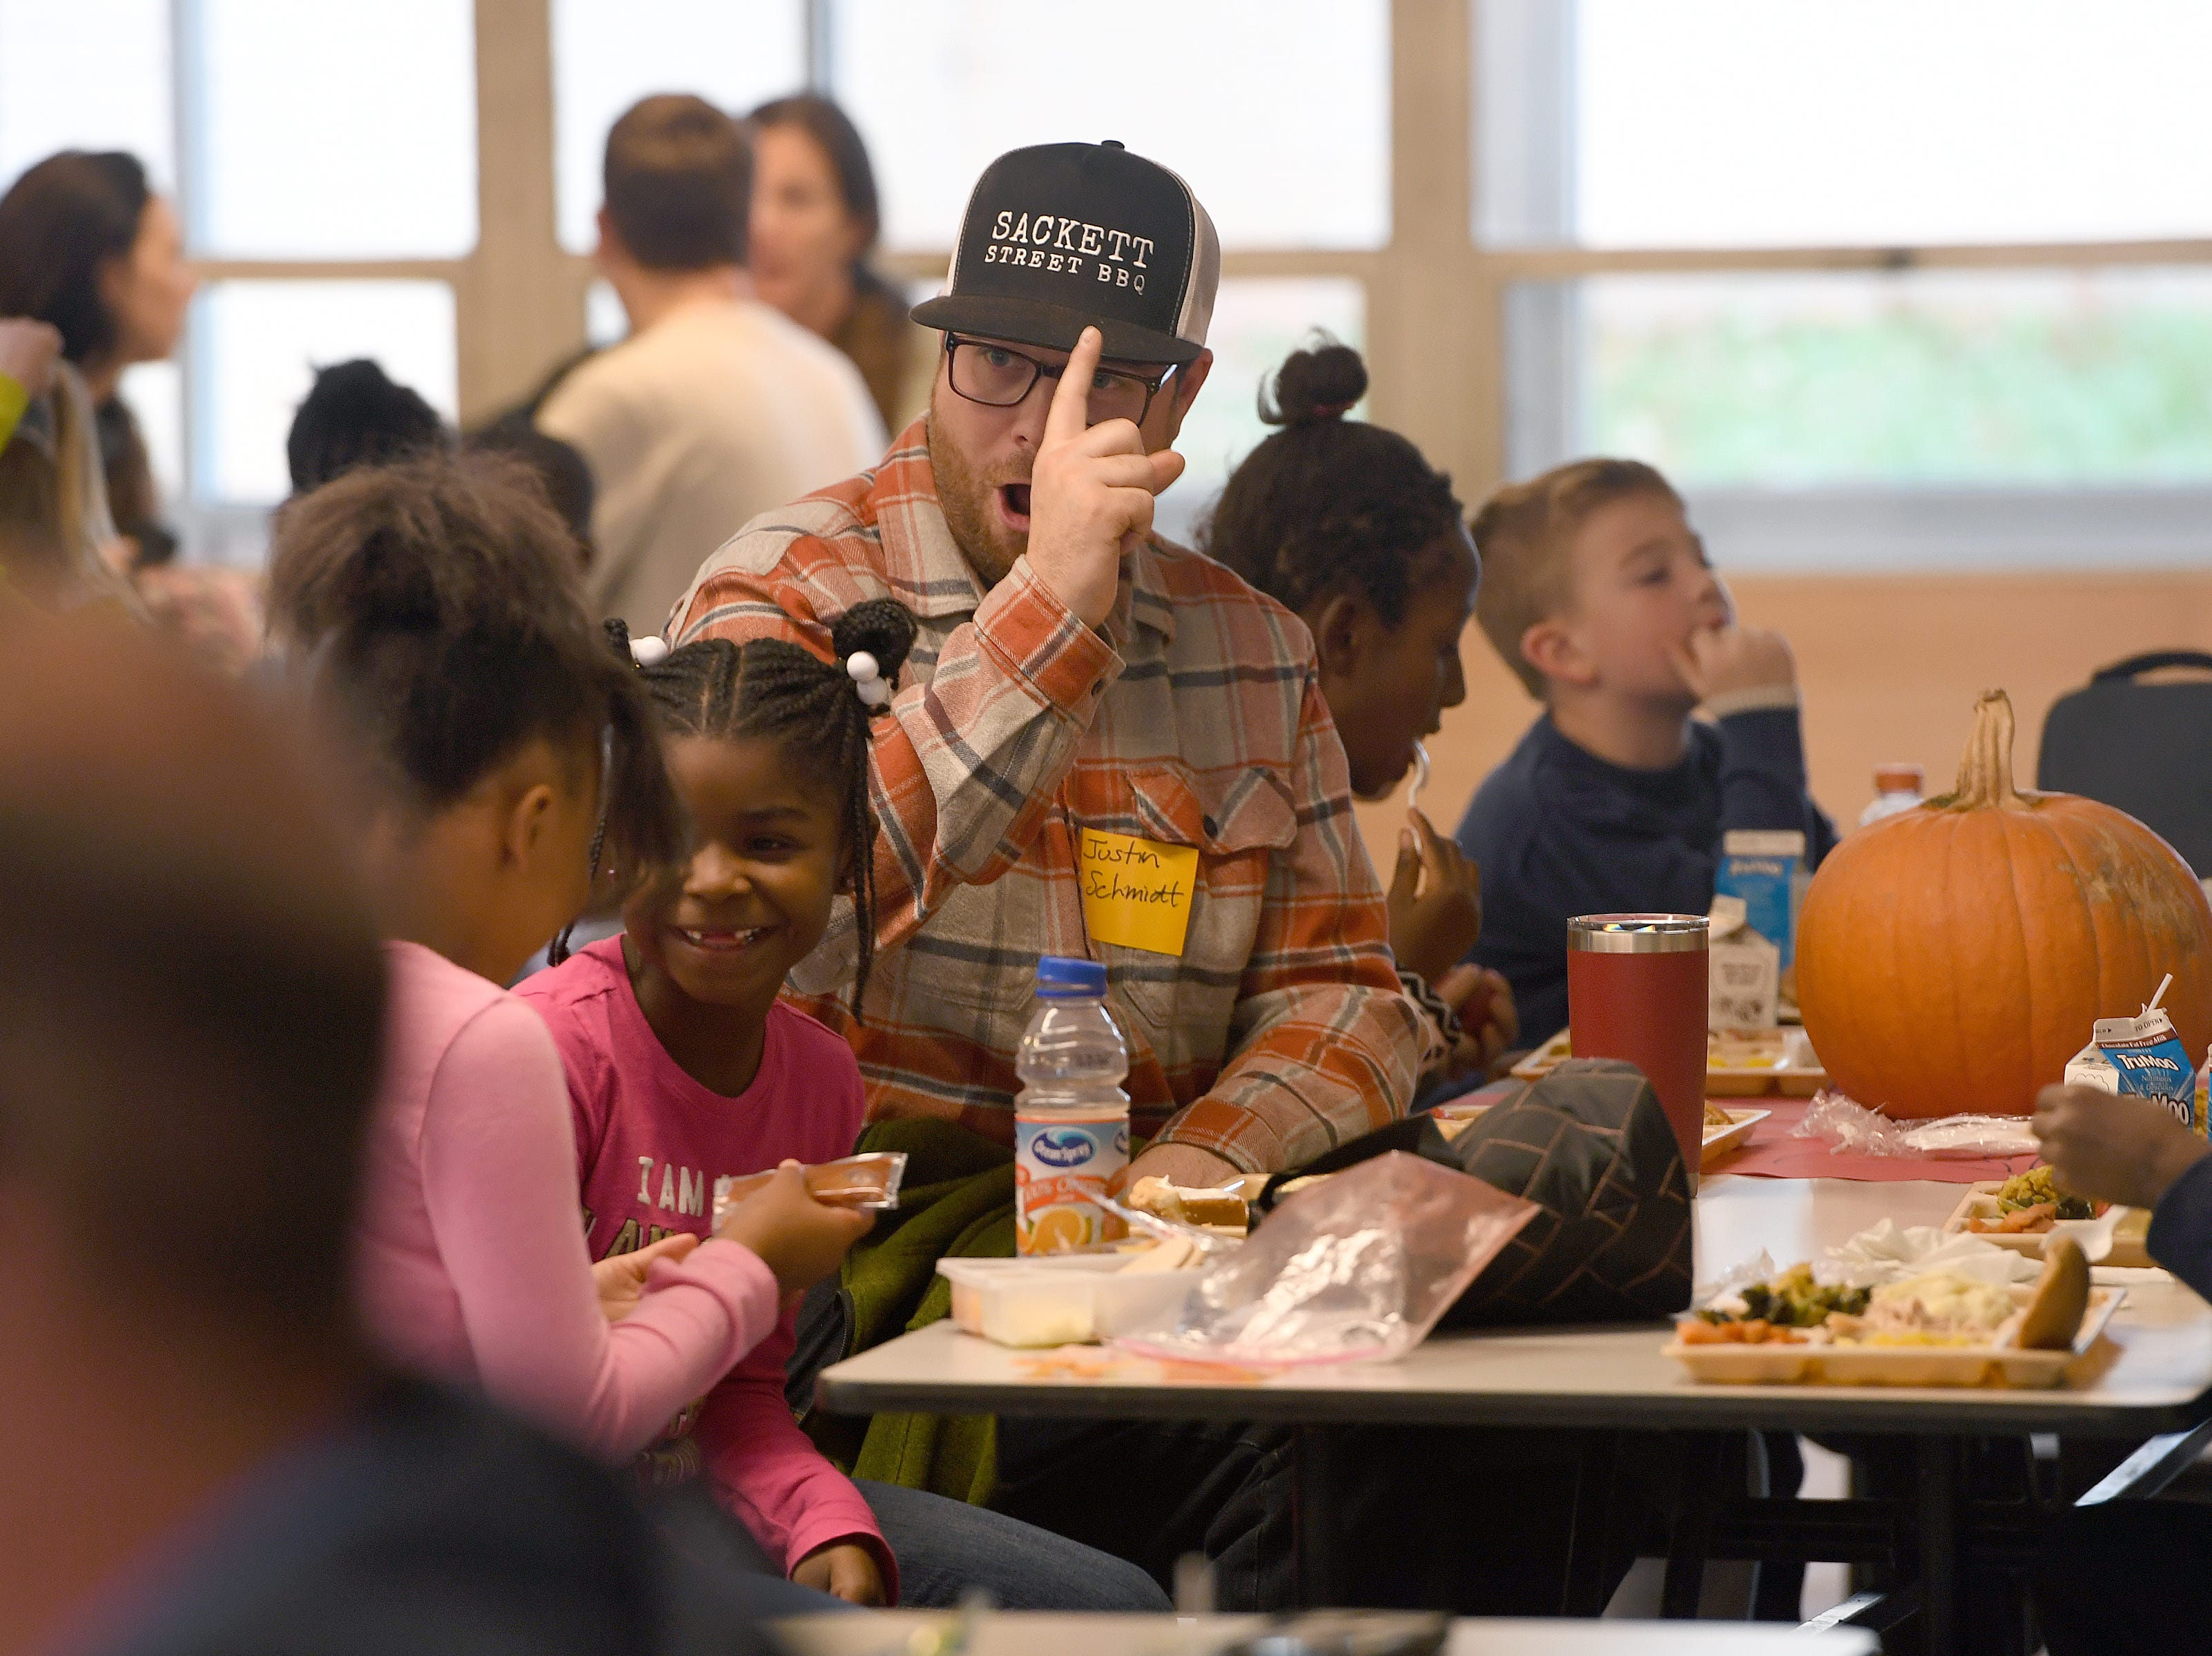 Students and parents were served a special Thanksgiving-style lunch at Ira B. Jones Elementary School on Nov. 14, 2018. Asheville City Schools served a special meal at all of their schools to celebrate the holiday.